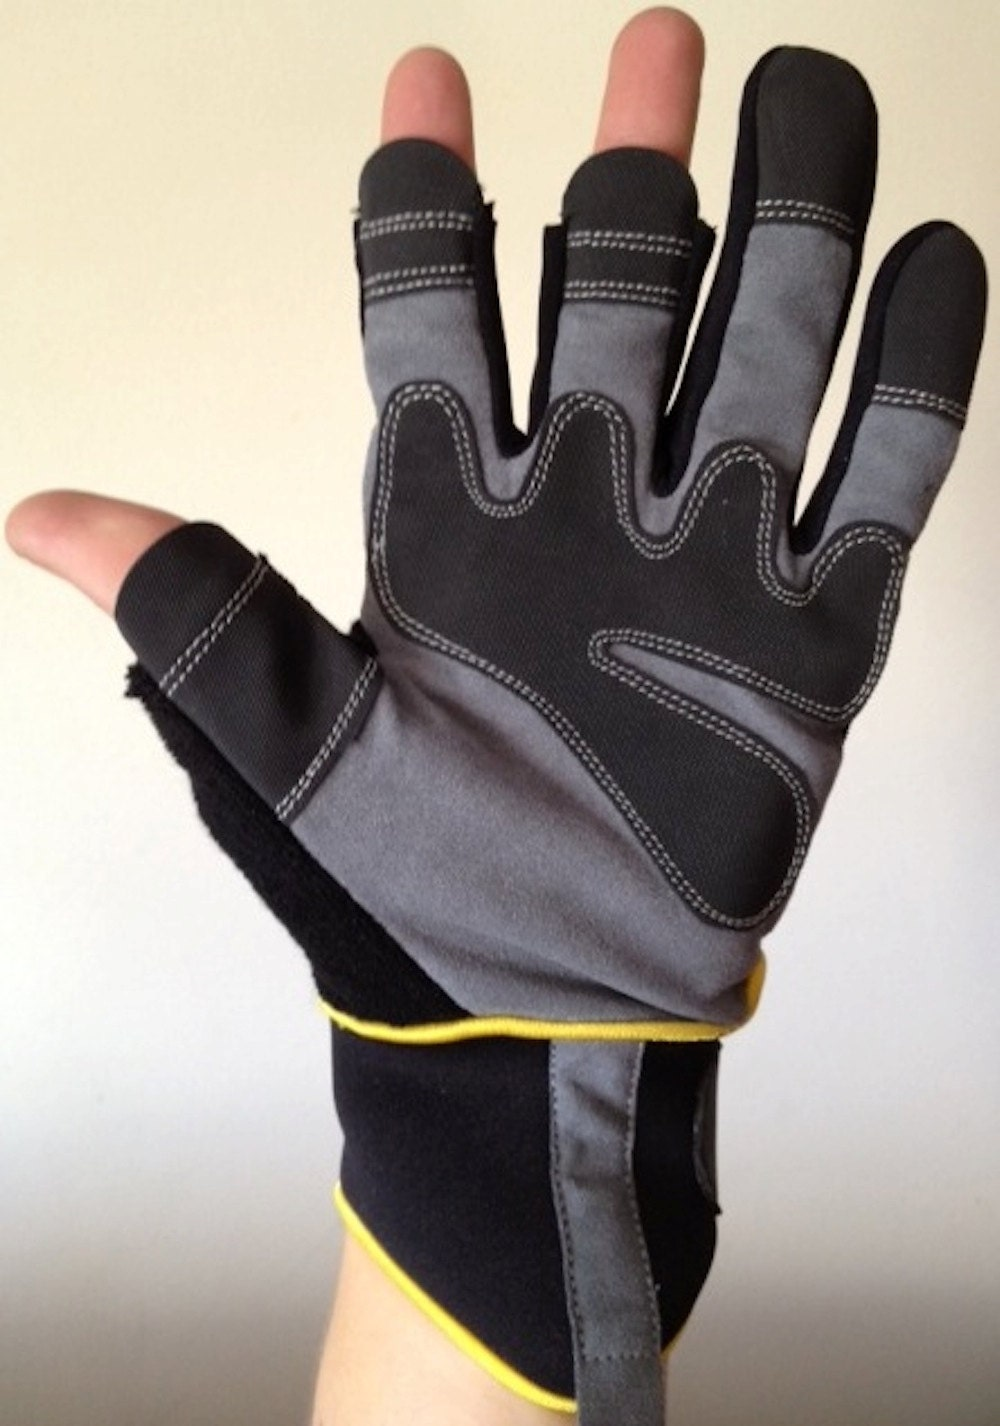 Fingerless Mechanics Gloves As Seen In The Daily Mirror